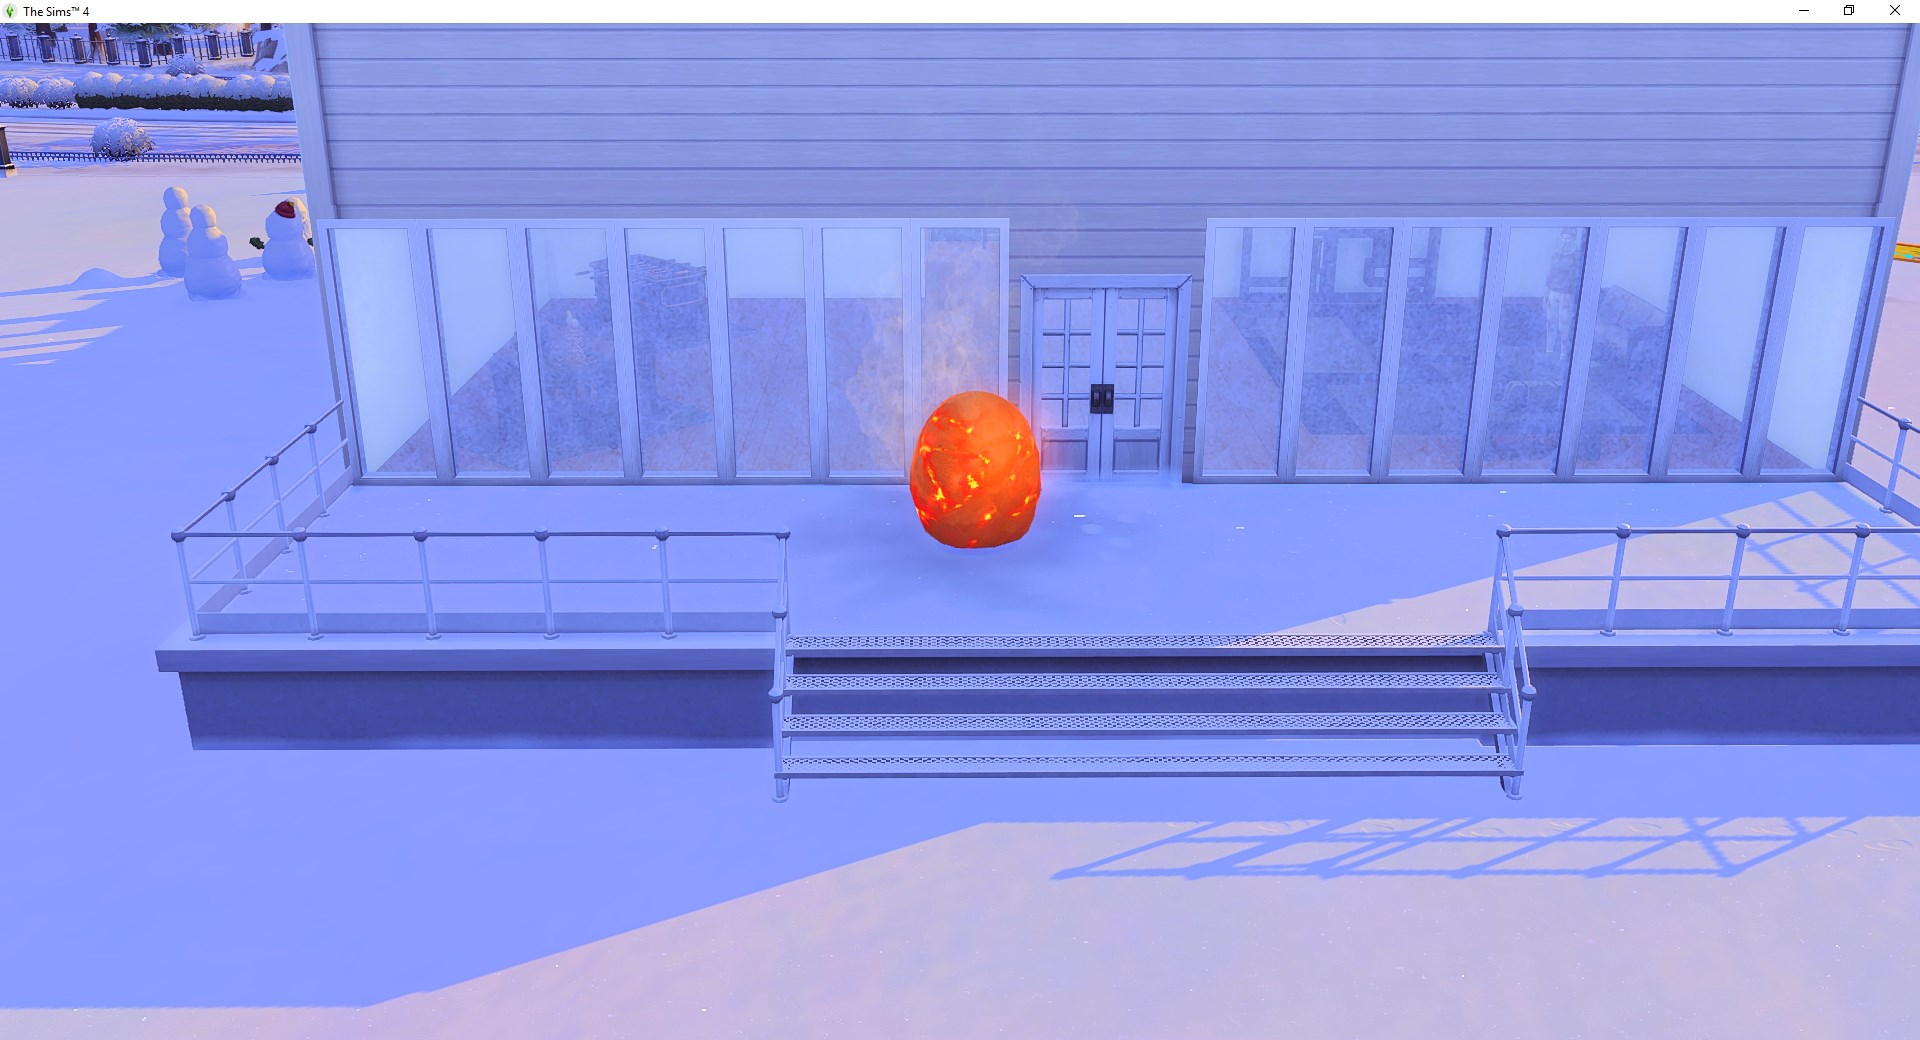 2019-10-27 07_59_58-The Sims™ 4